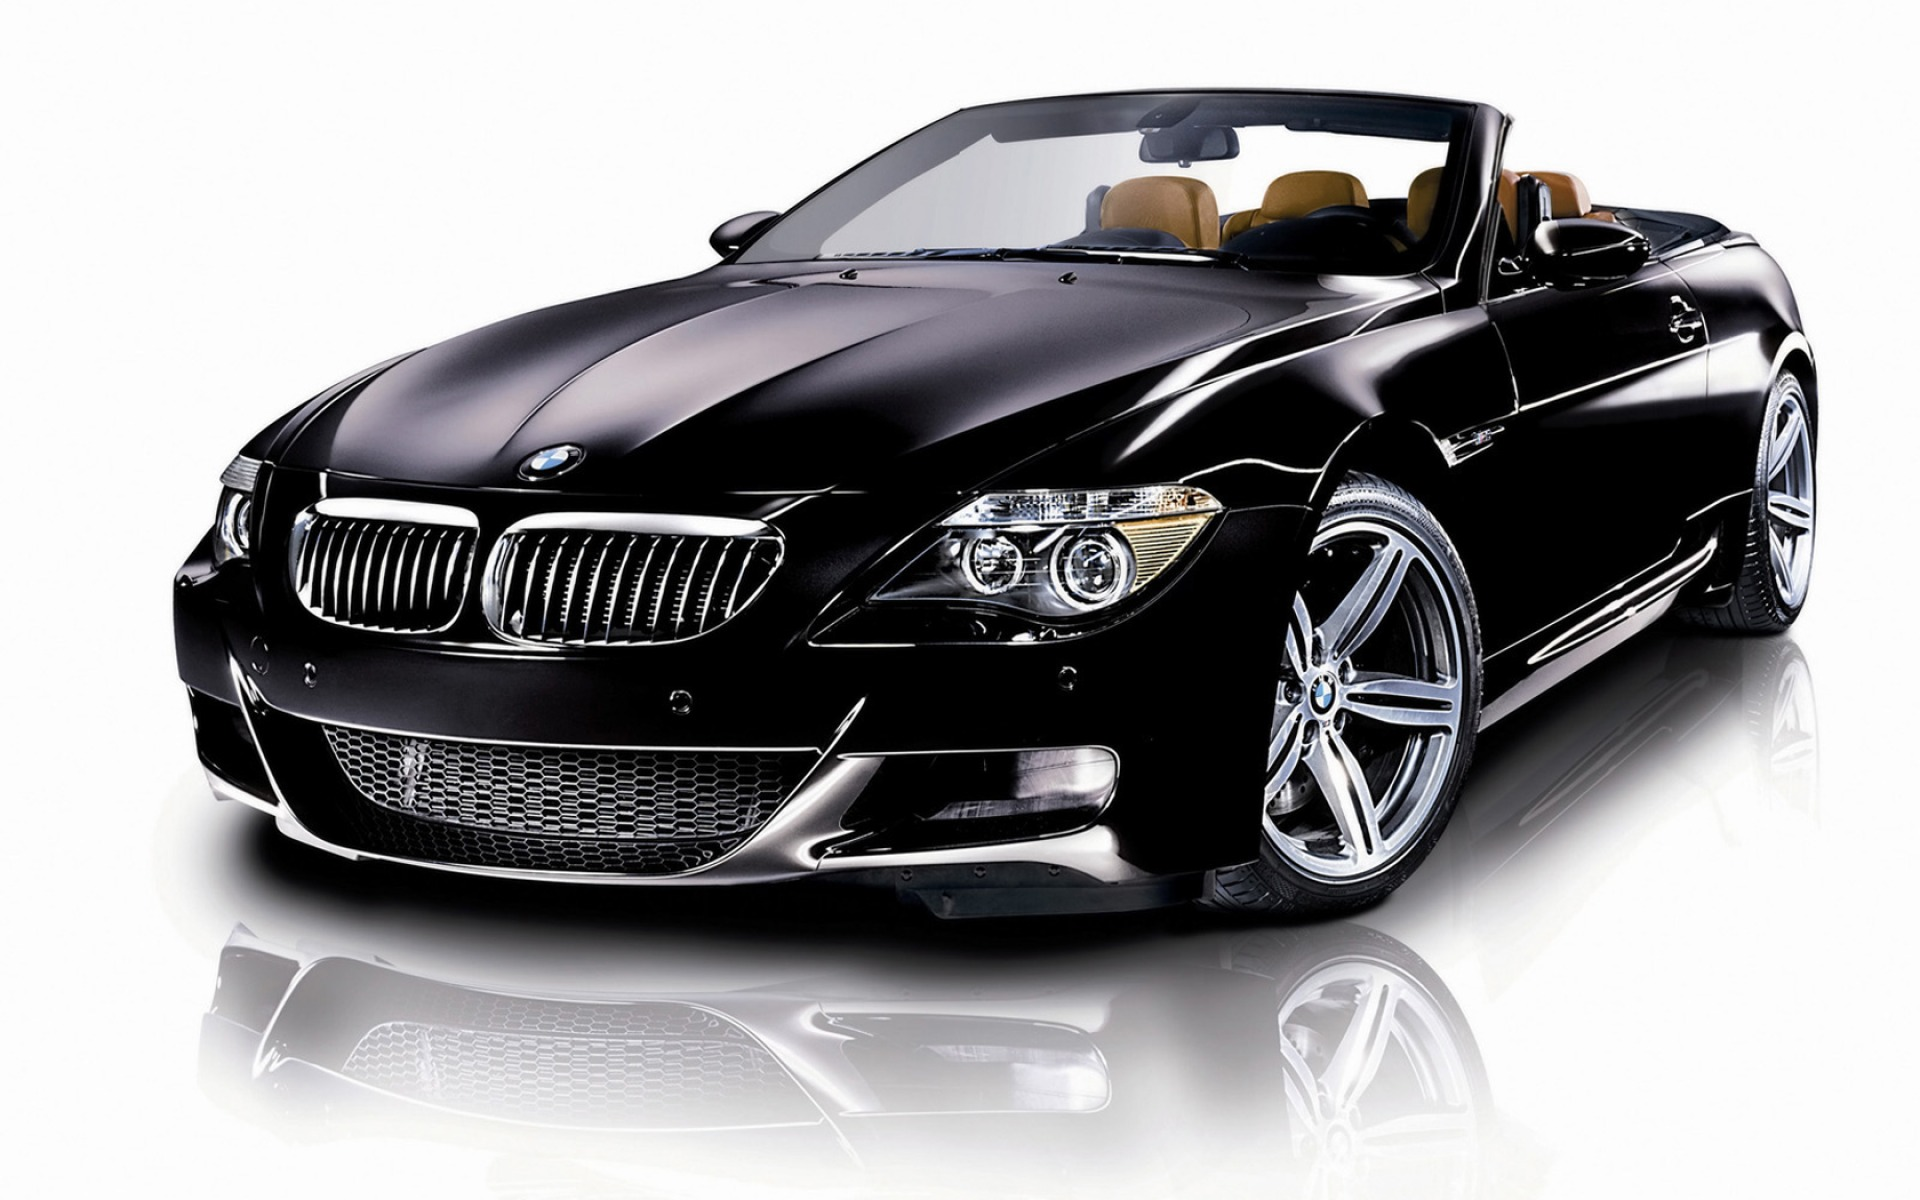 Ultrablogus  Wonderful Bmw Car Wallpaper Wallpapers For Free Download About   With Exciting Bmw M Convertible Wallpaper Bmw Cars With Enchanting  El Camino Interior Also  Chevy Interior Kits In Addition Interior Door Handle And  Camaro Custom Interior As Well As Interior Bmw I Additionally Dodge Journey Interior From Allfreedownloadcom With Ultrablogus  Exciting Bmw Car Wallpaper Wallpapers For Free Download About   With Enchanting Bmw M Convertible Wallpaper Bmw Cars And Wonderful  El Camino Interior Also  Chevy Interior Kits In Addition Interior Door Handle From Allfreedownloadcom